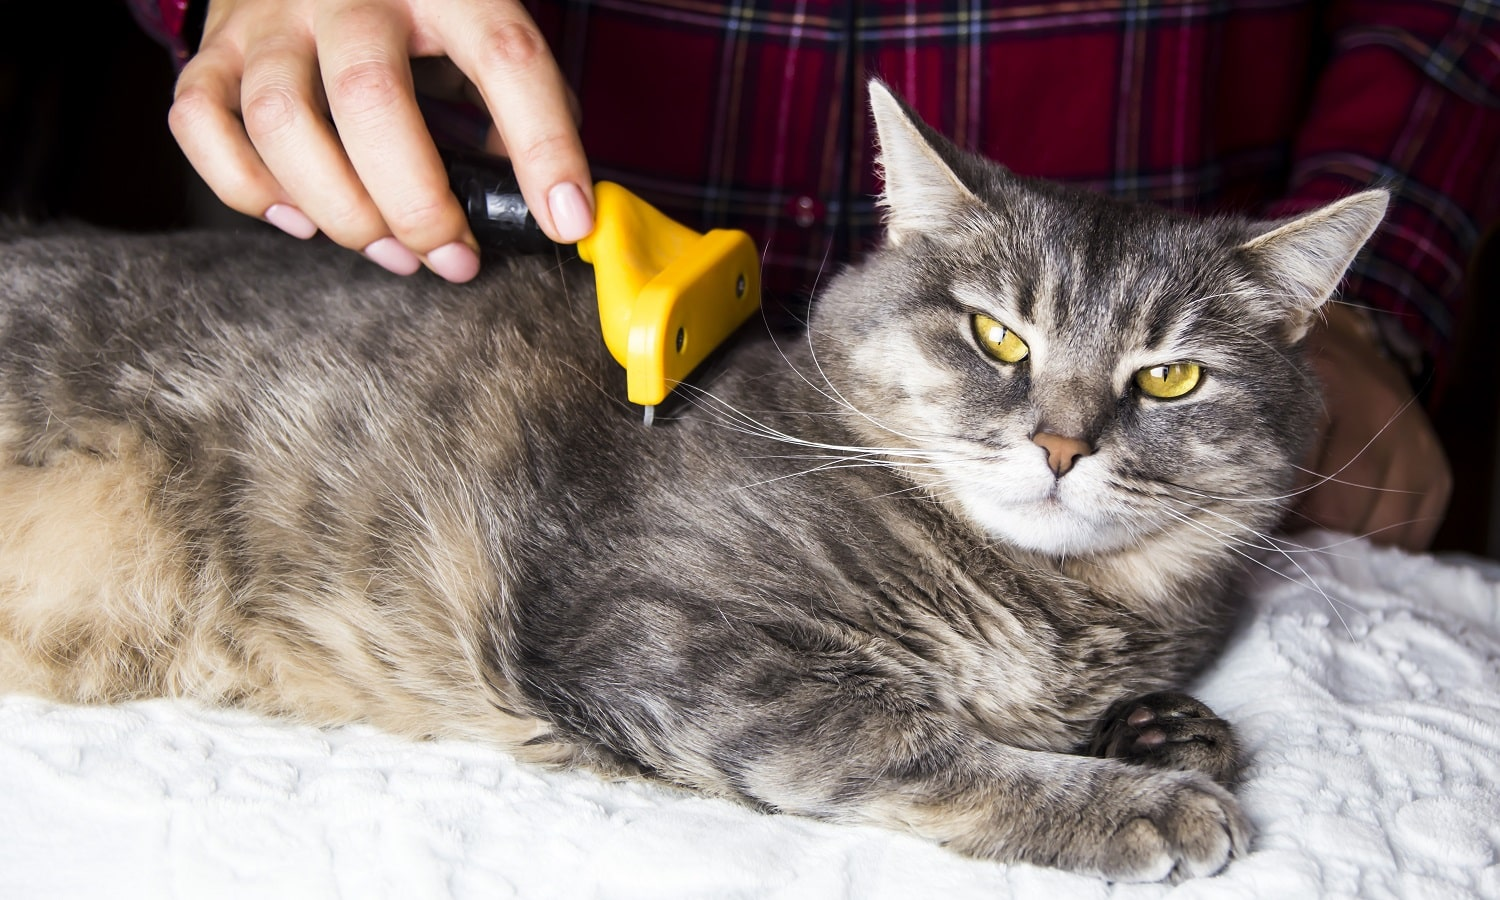 A woman combs her gray cat with a torch to get rid of excess wool. Caring for pets